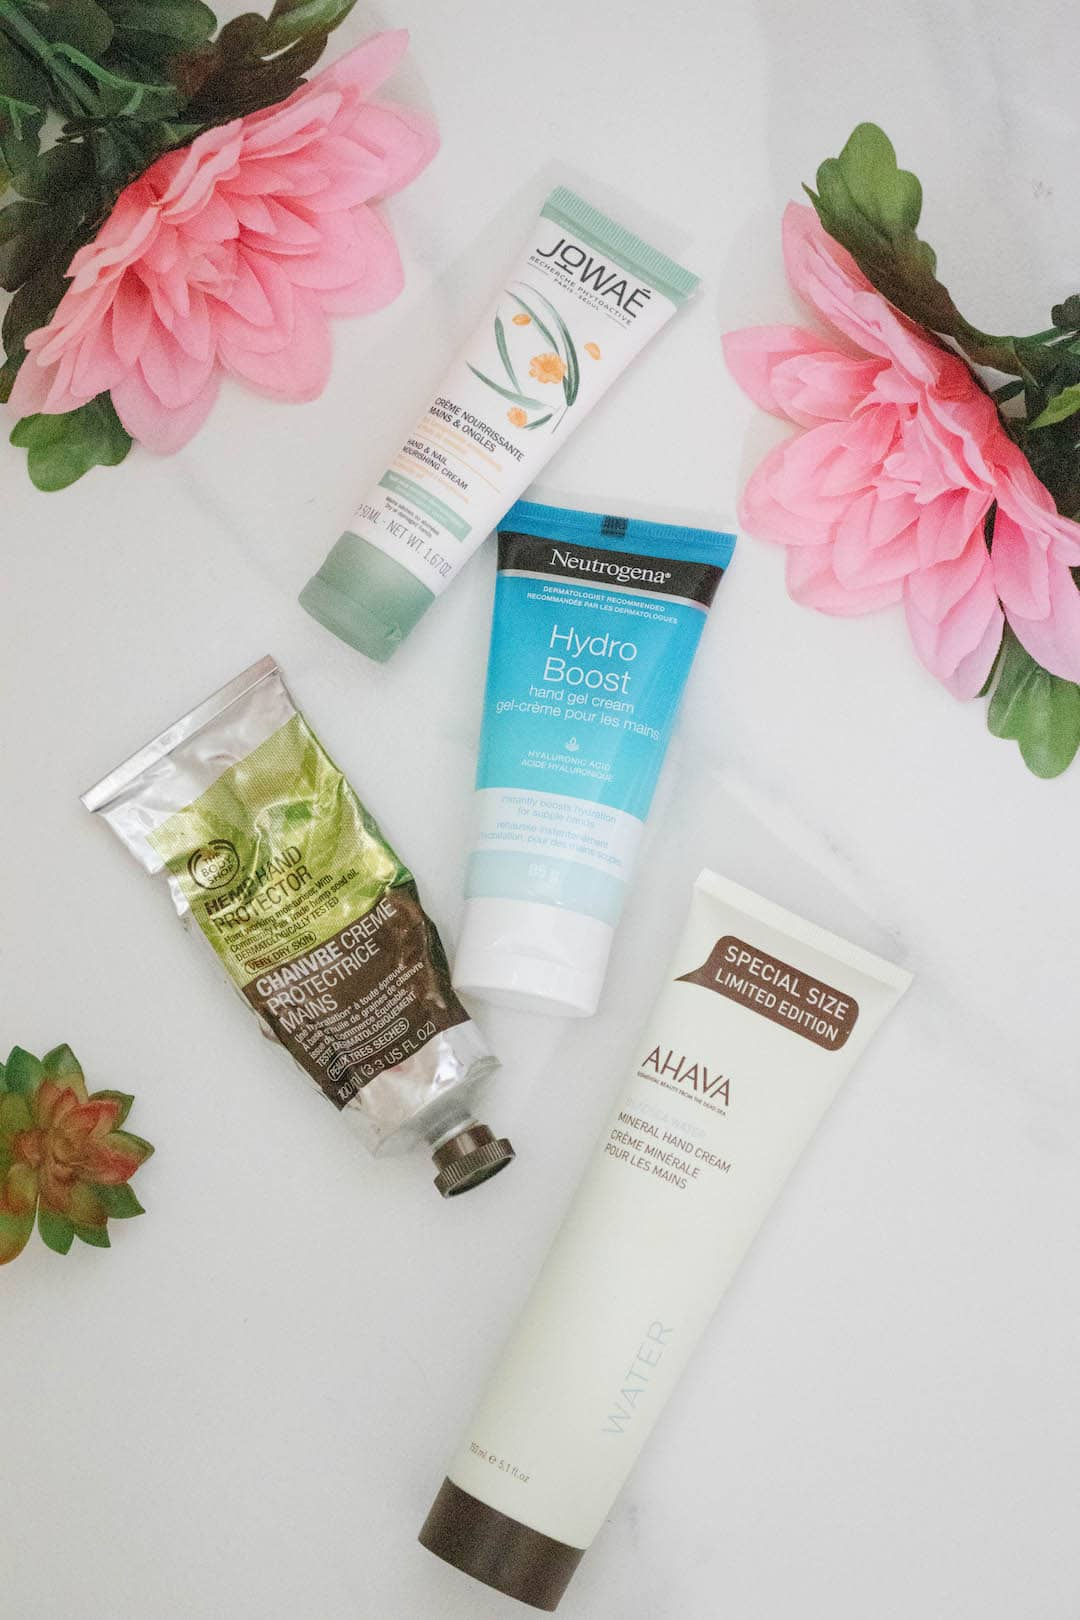 Best Hand Creams for Dry Hands | My Favourite Hand Creams